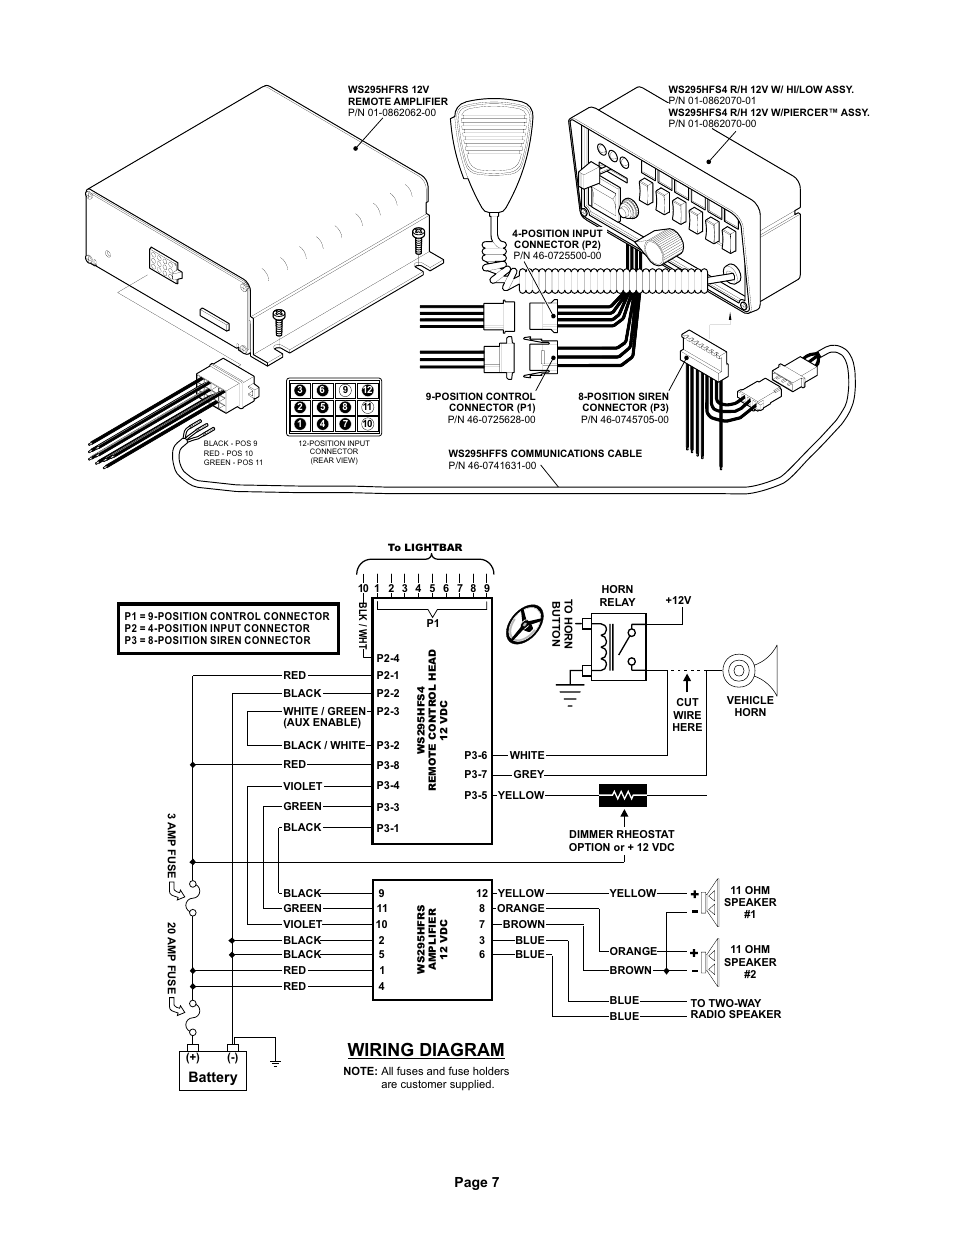 whelen siren wiring diagram model 295sl100